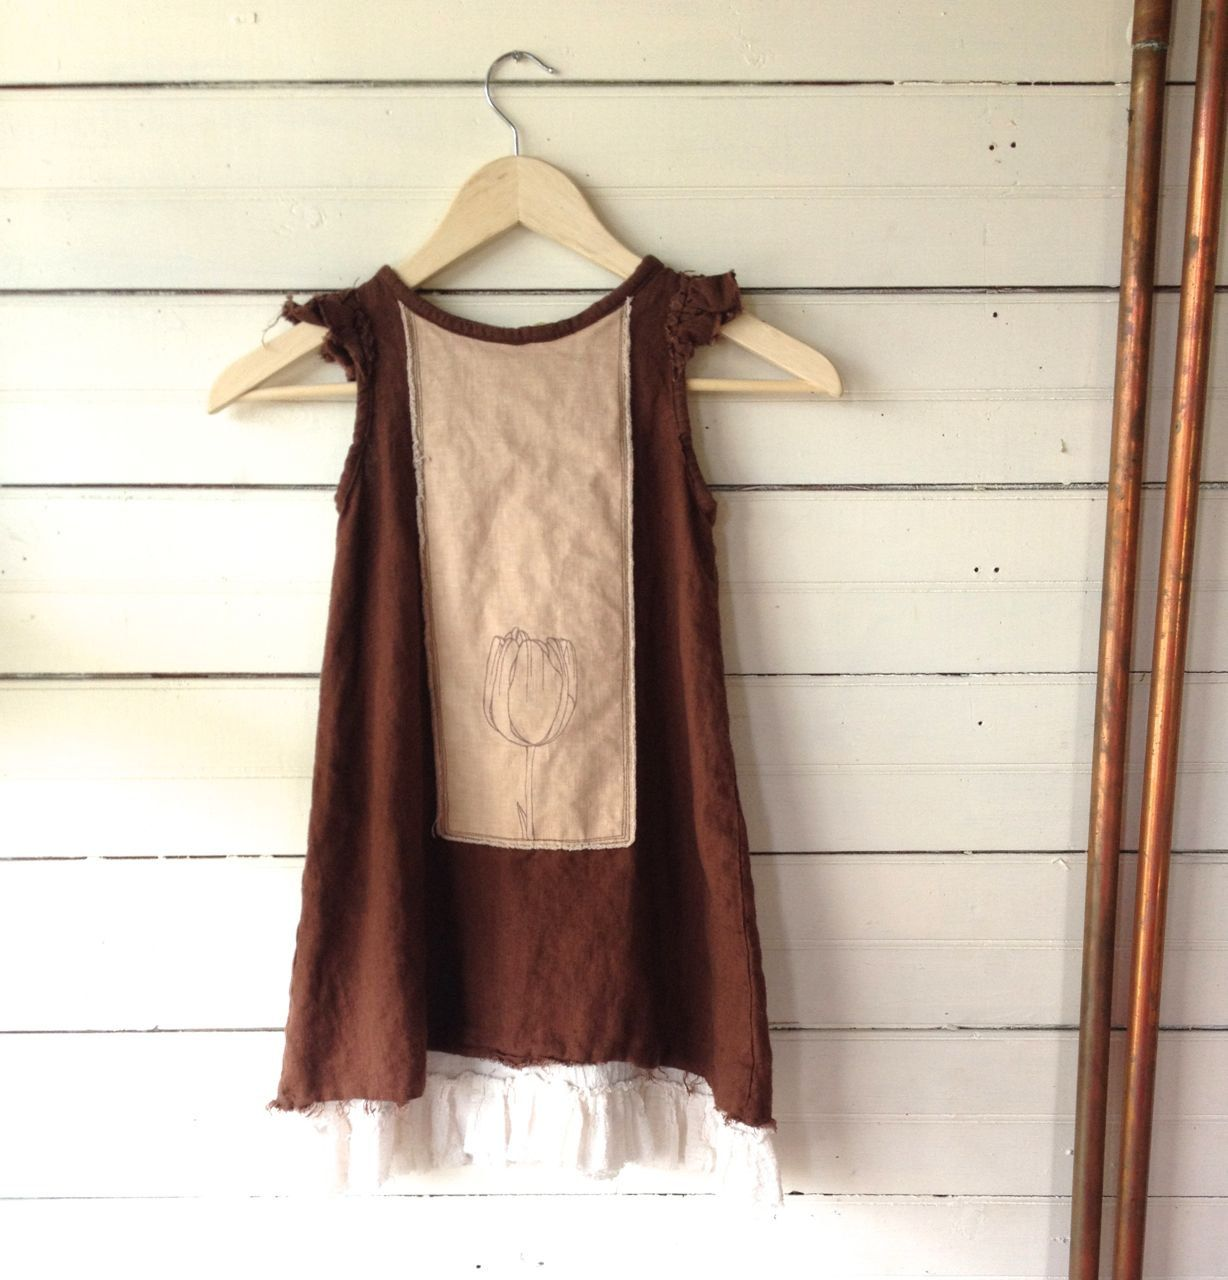 One of a Kind Girl's Rustic Linen Dress - size 4T by TwinkleVT on Etsy